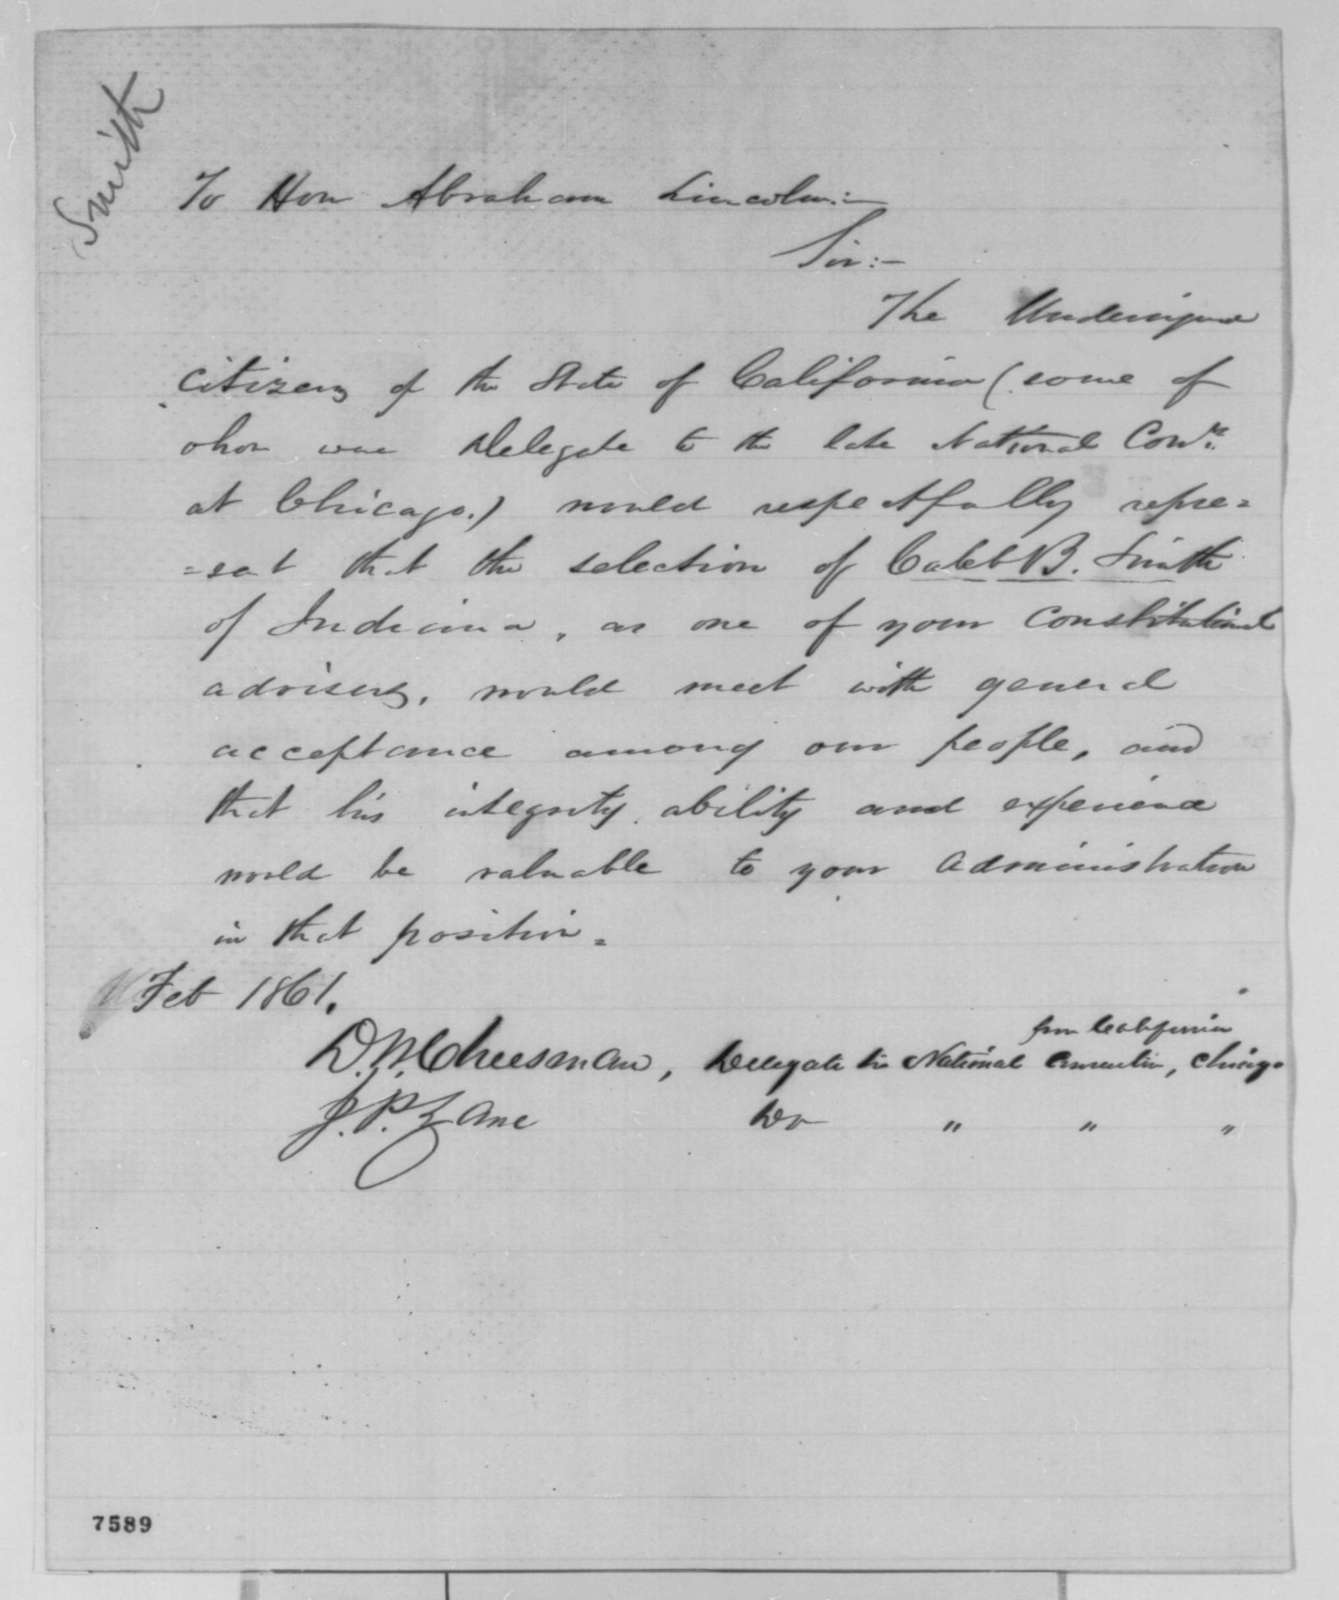 David W. Cheesman and John P. Zane to Abraham Lincoln, February 1861  (Recommend Caleb Smith for cabinet)